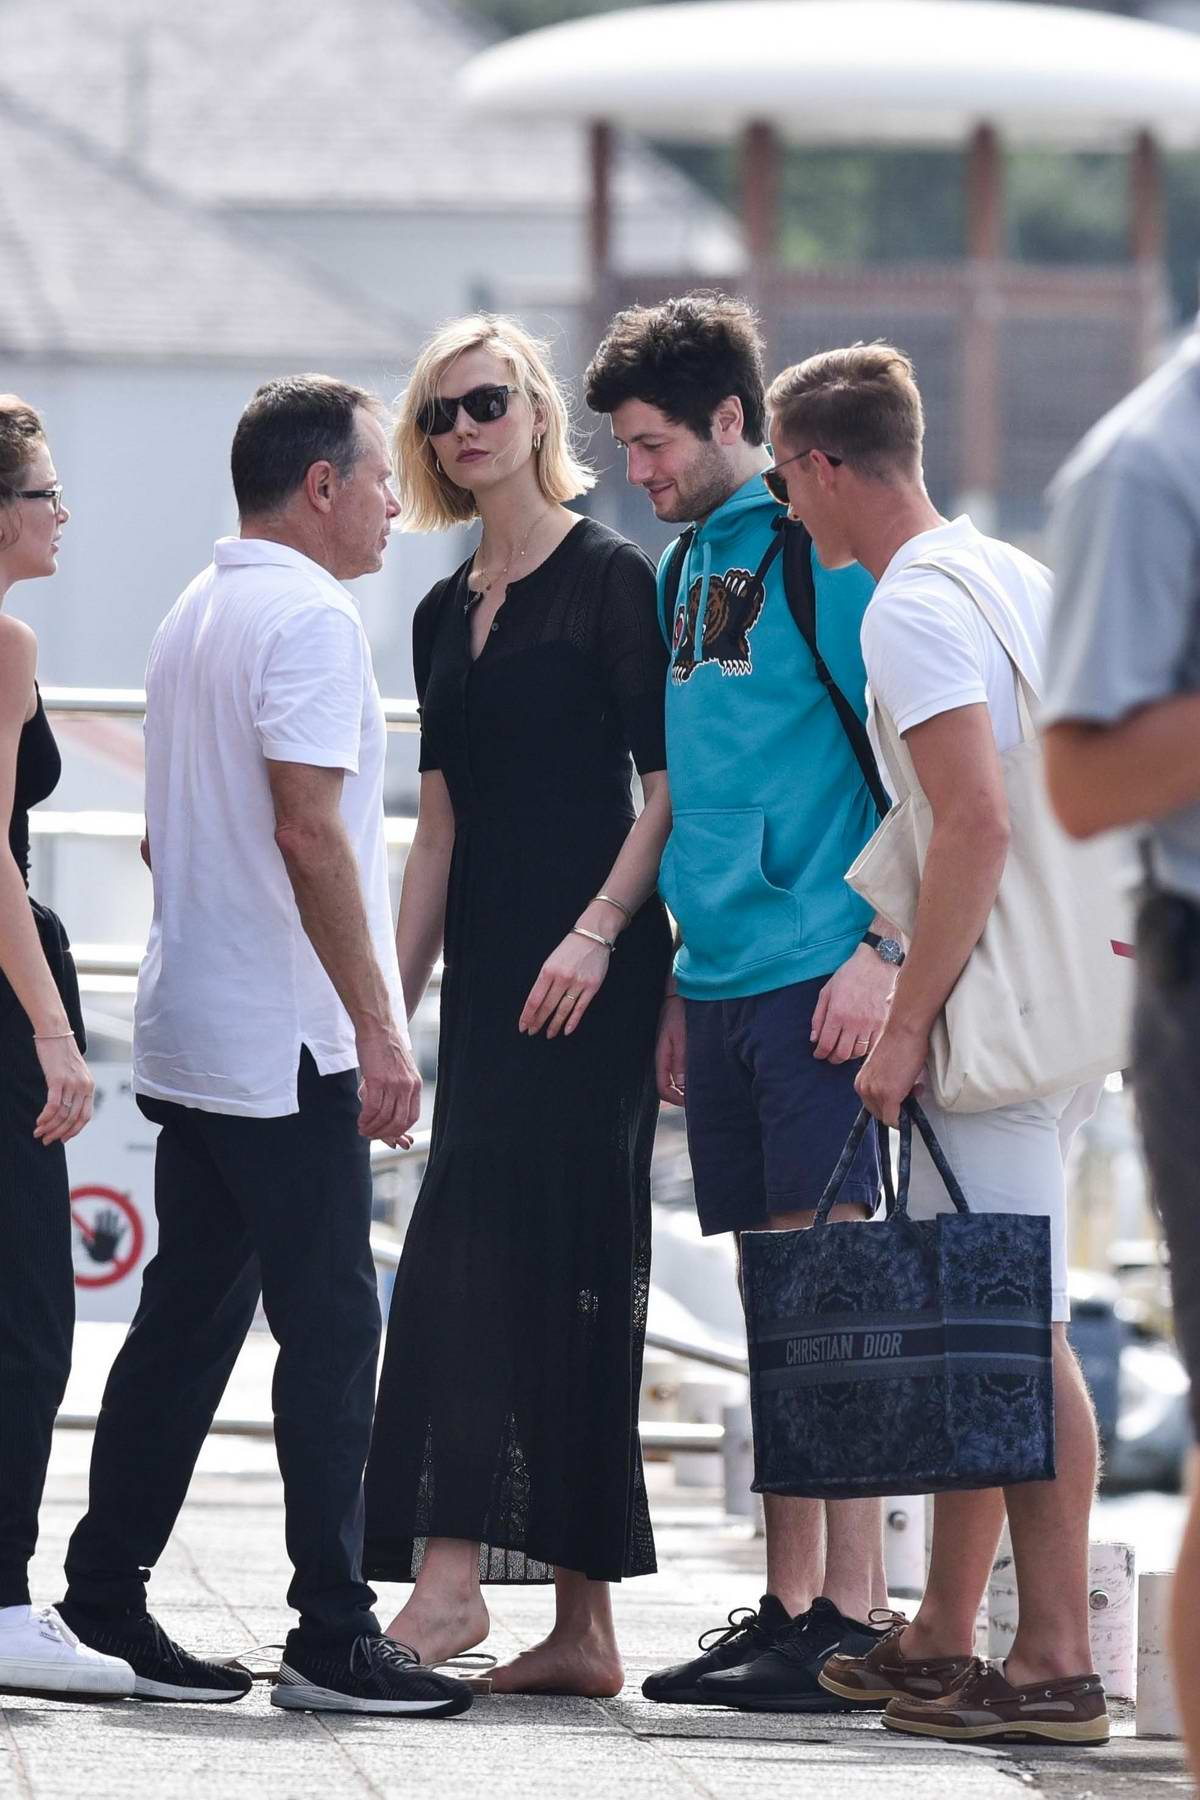 Karlie Kloss and Joshua Kushner depart after a relaxing few days on the mega yacht 'Rising Sun' in St Barts, France